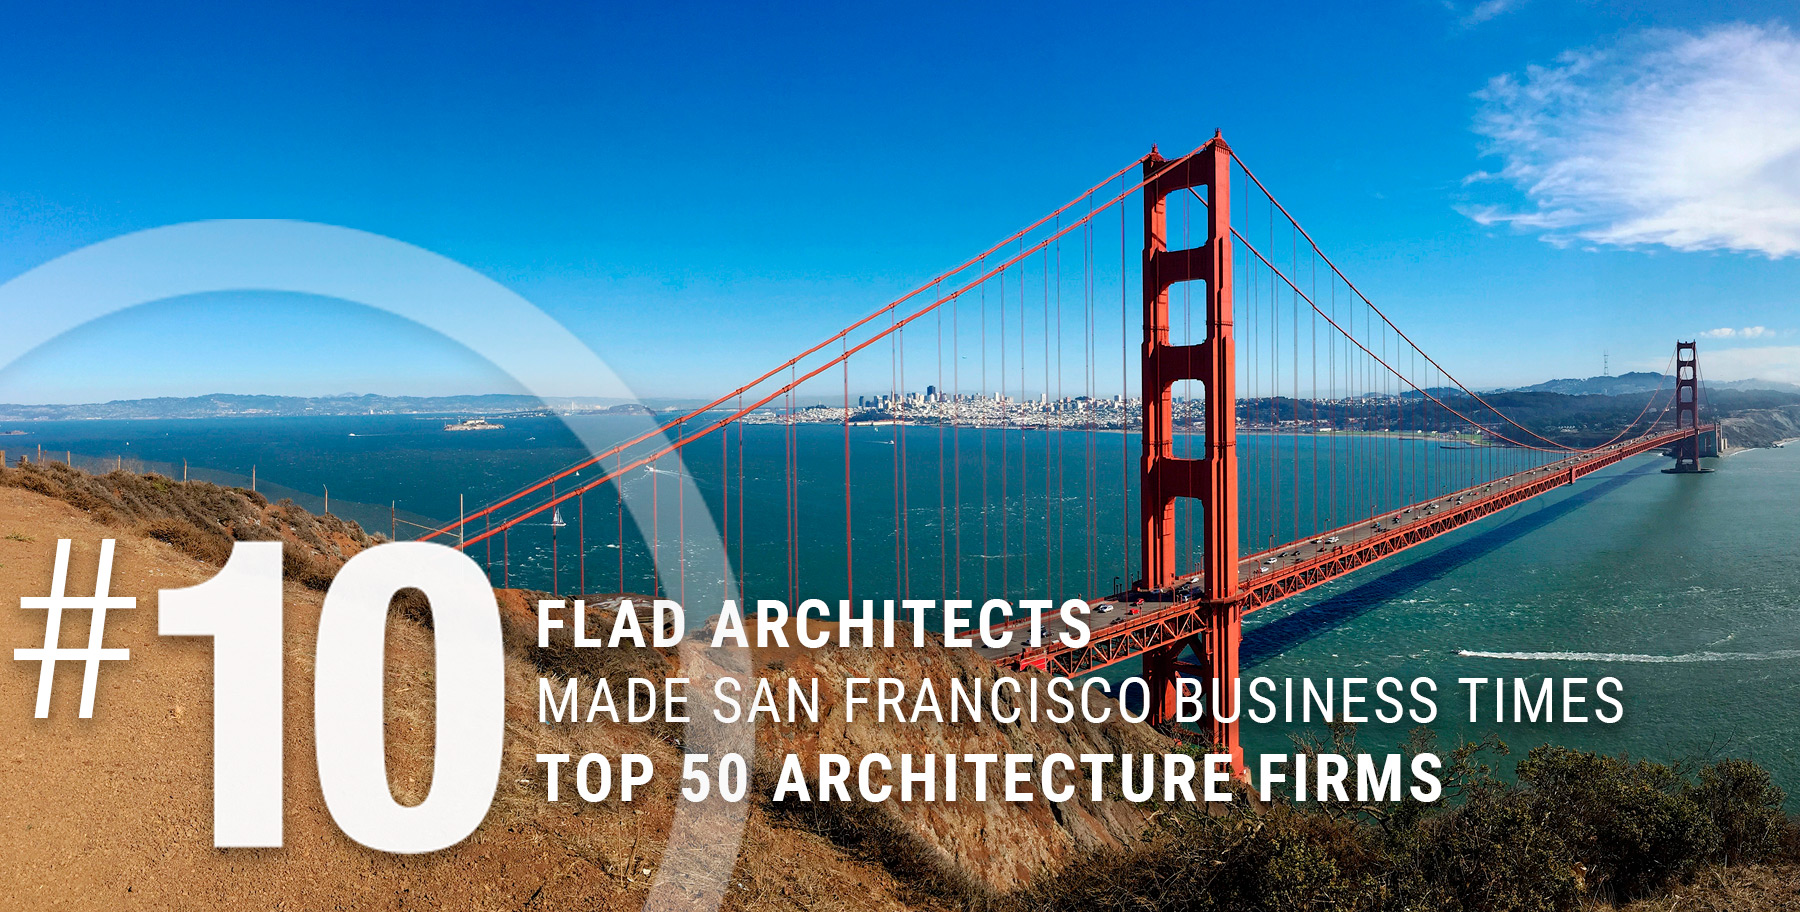 Flad Architects is Number 10 in San Francisco Business Times Top 50 Architecture Firms | Flad Architects